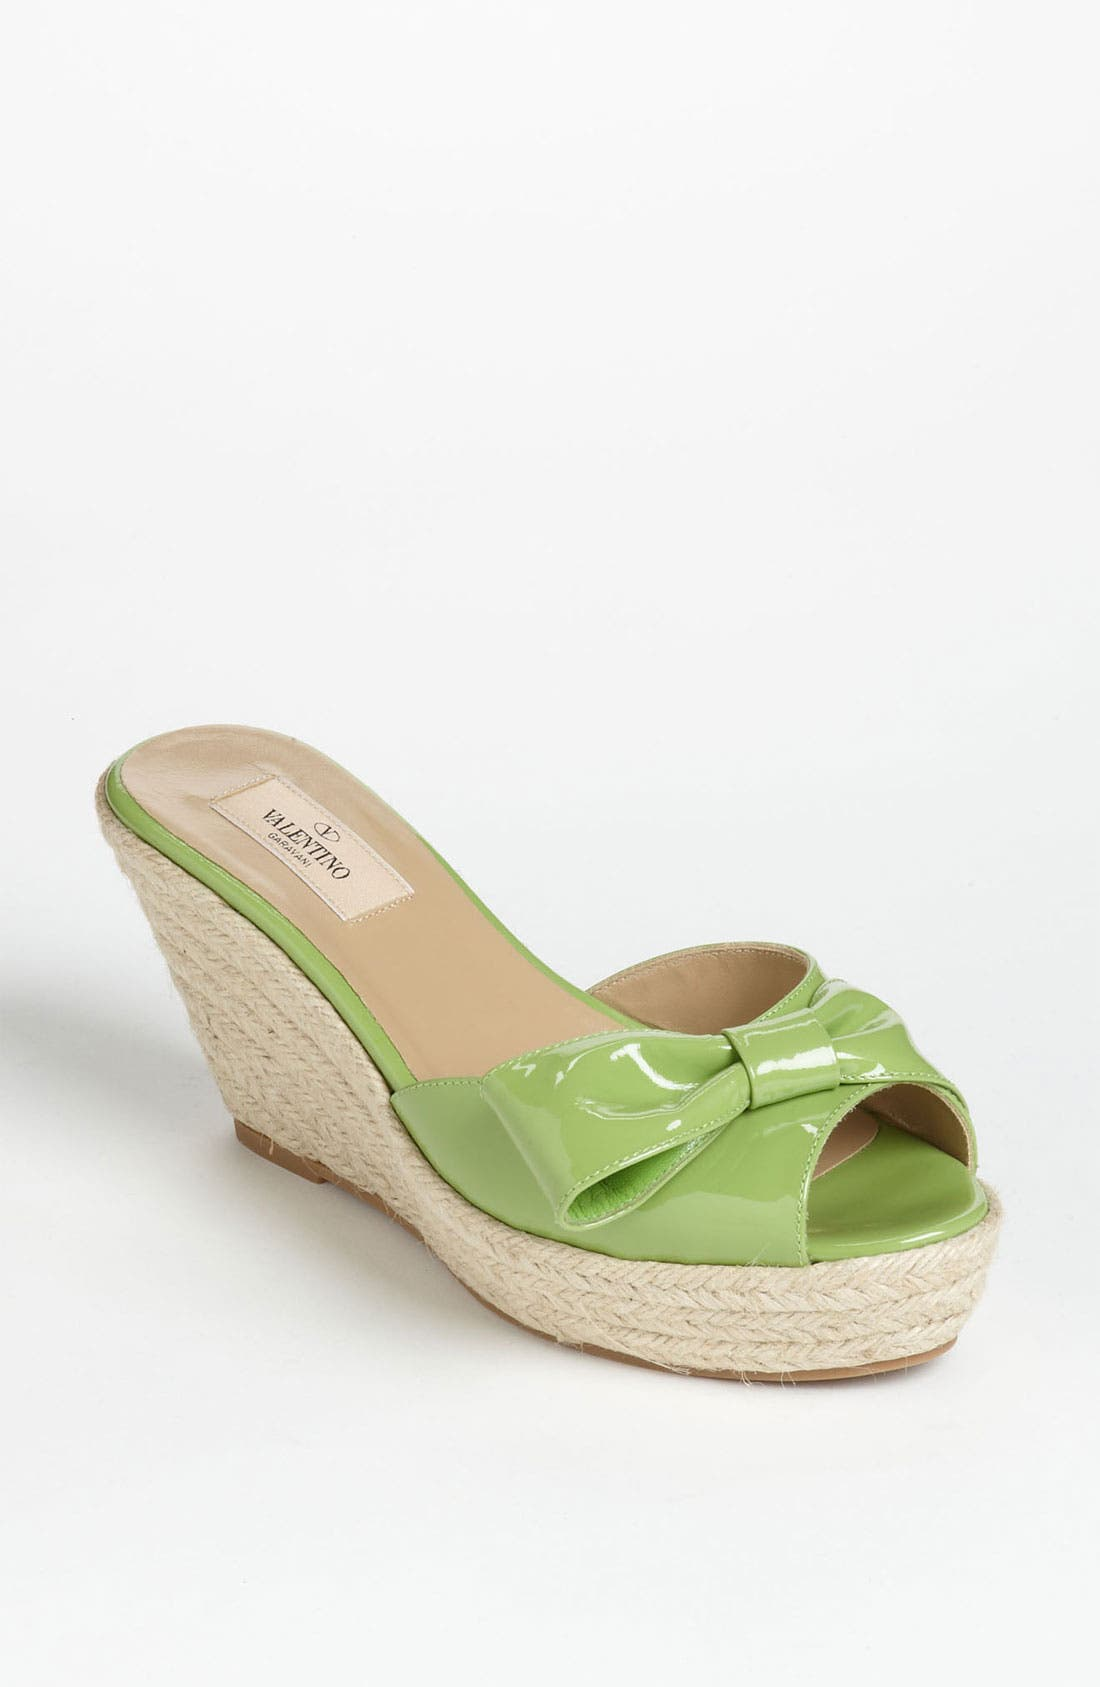 Alternate Image 1 Selected - Valentino 'Mena' Espadrille Slide